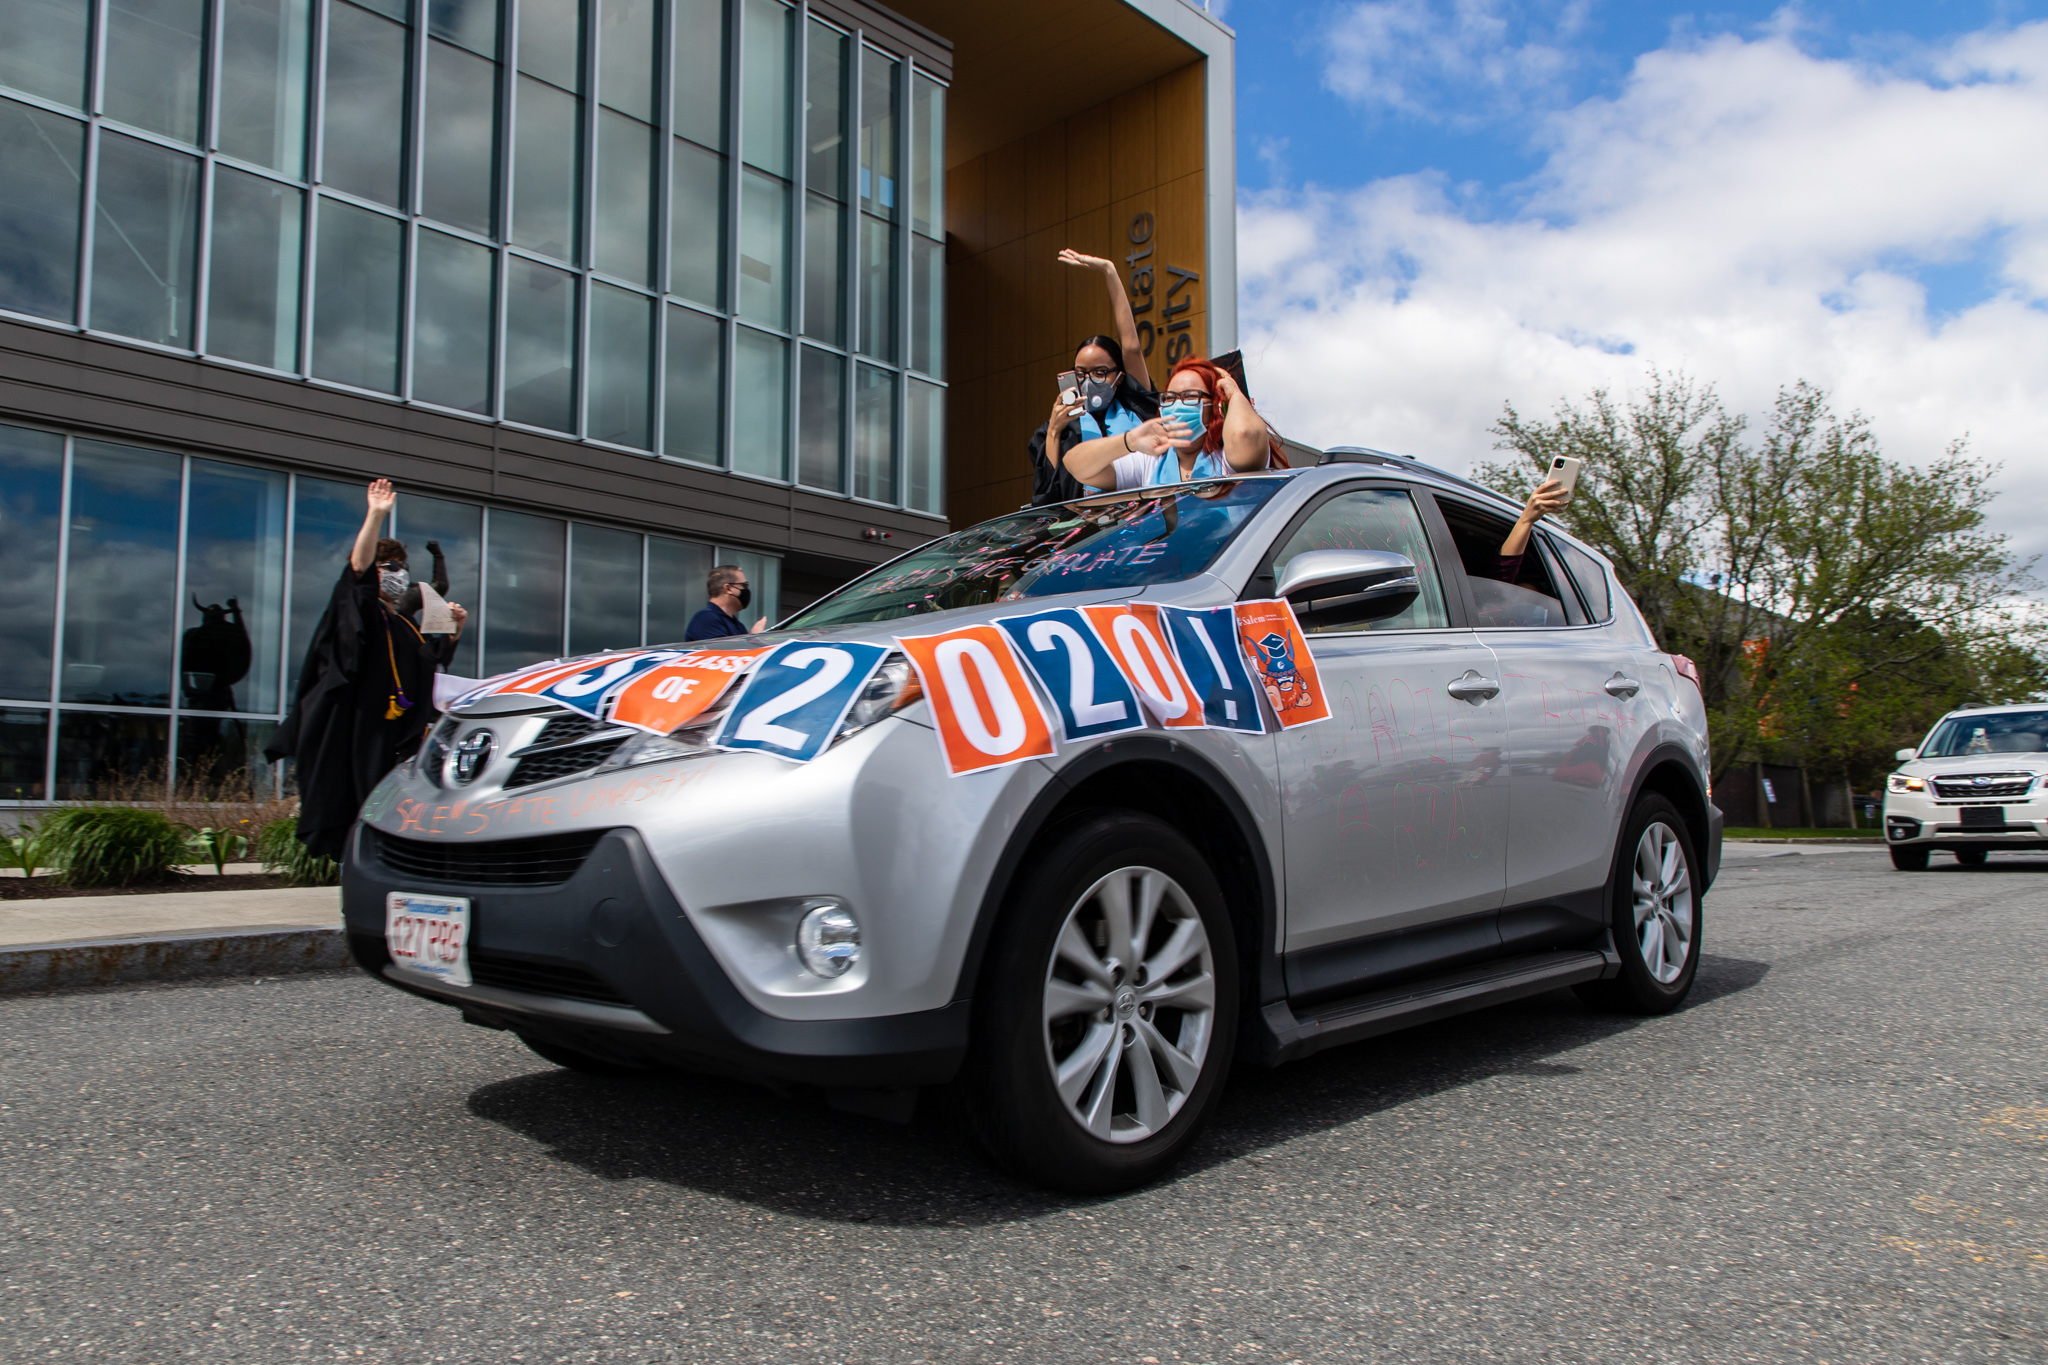 Graduates wave from the sunroof of a car during the Class of 2020 Salem State d…